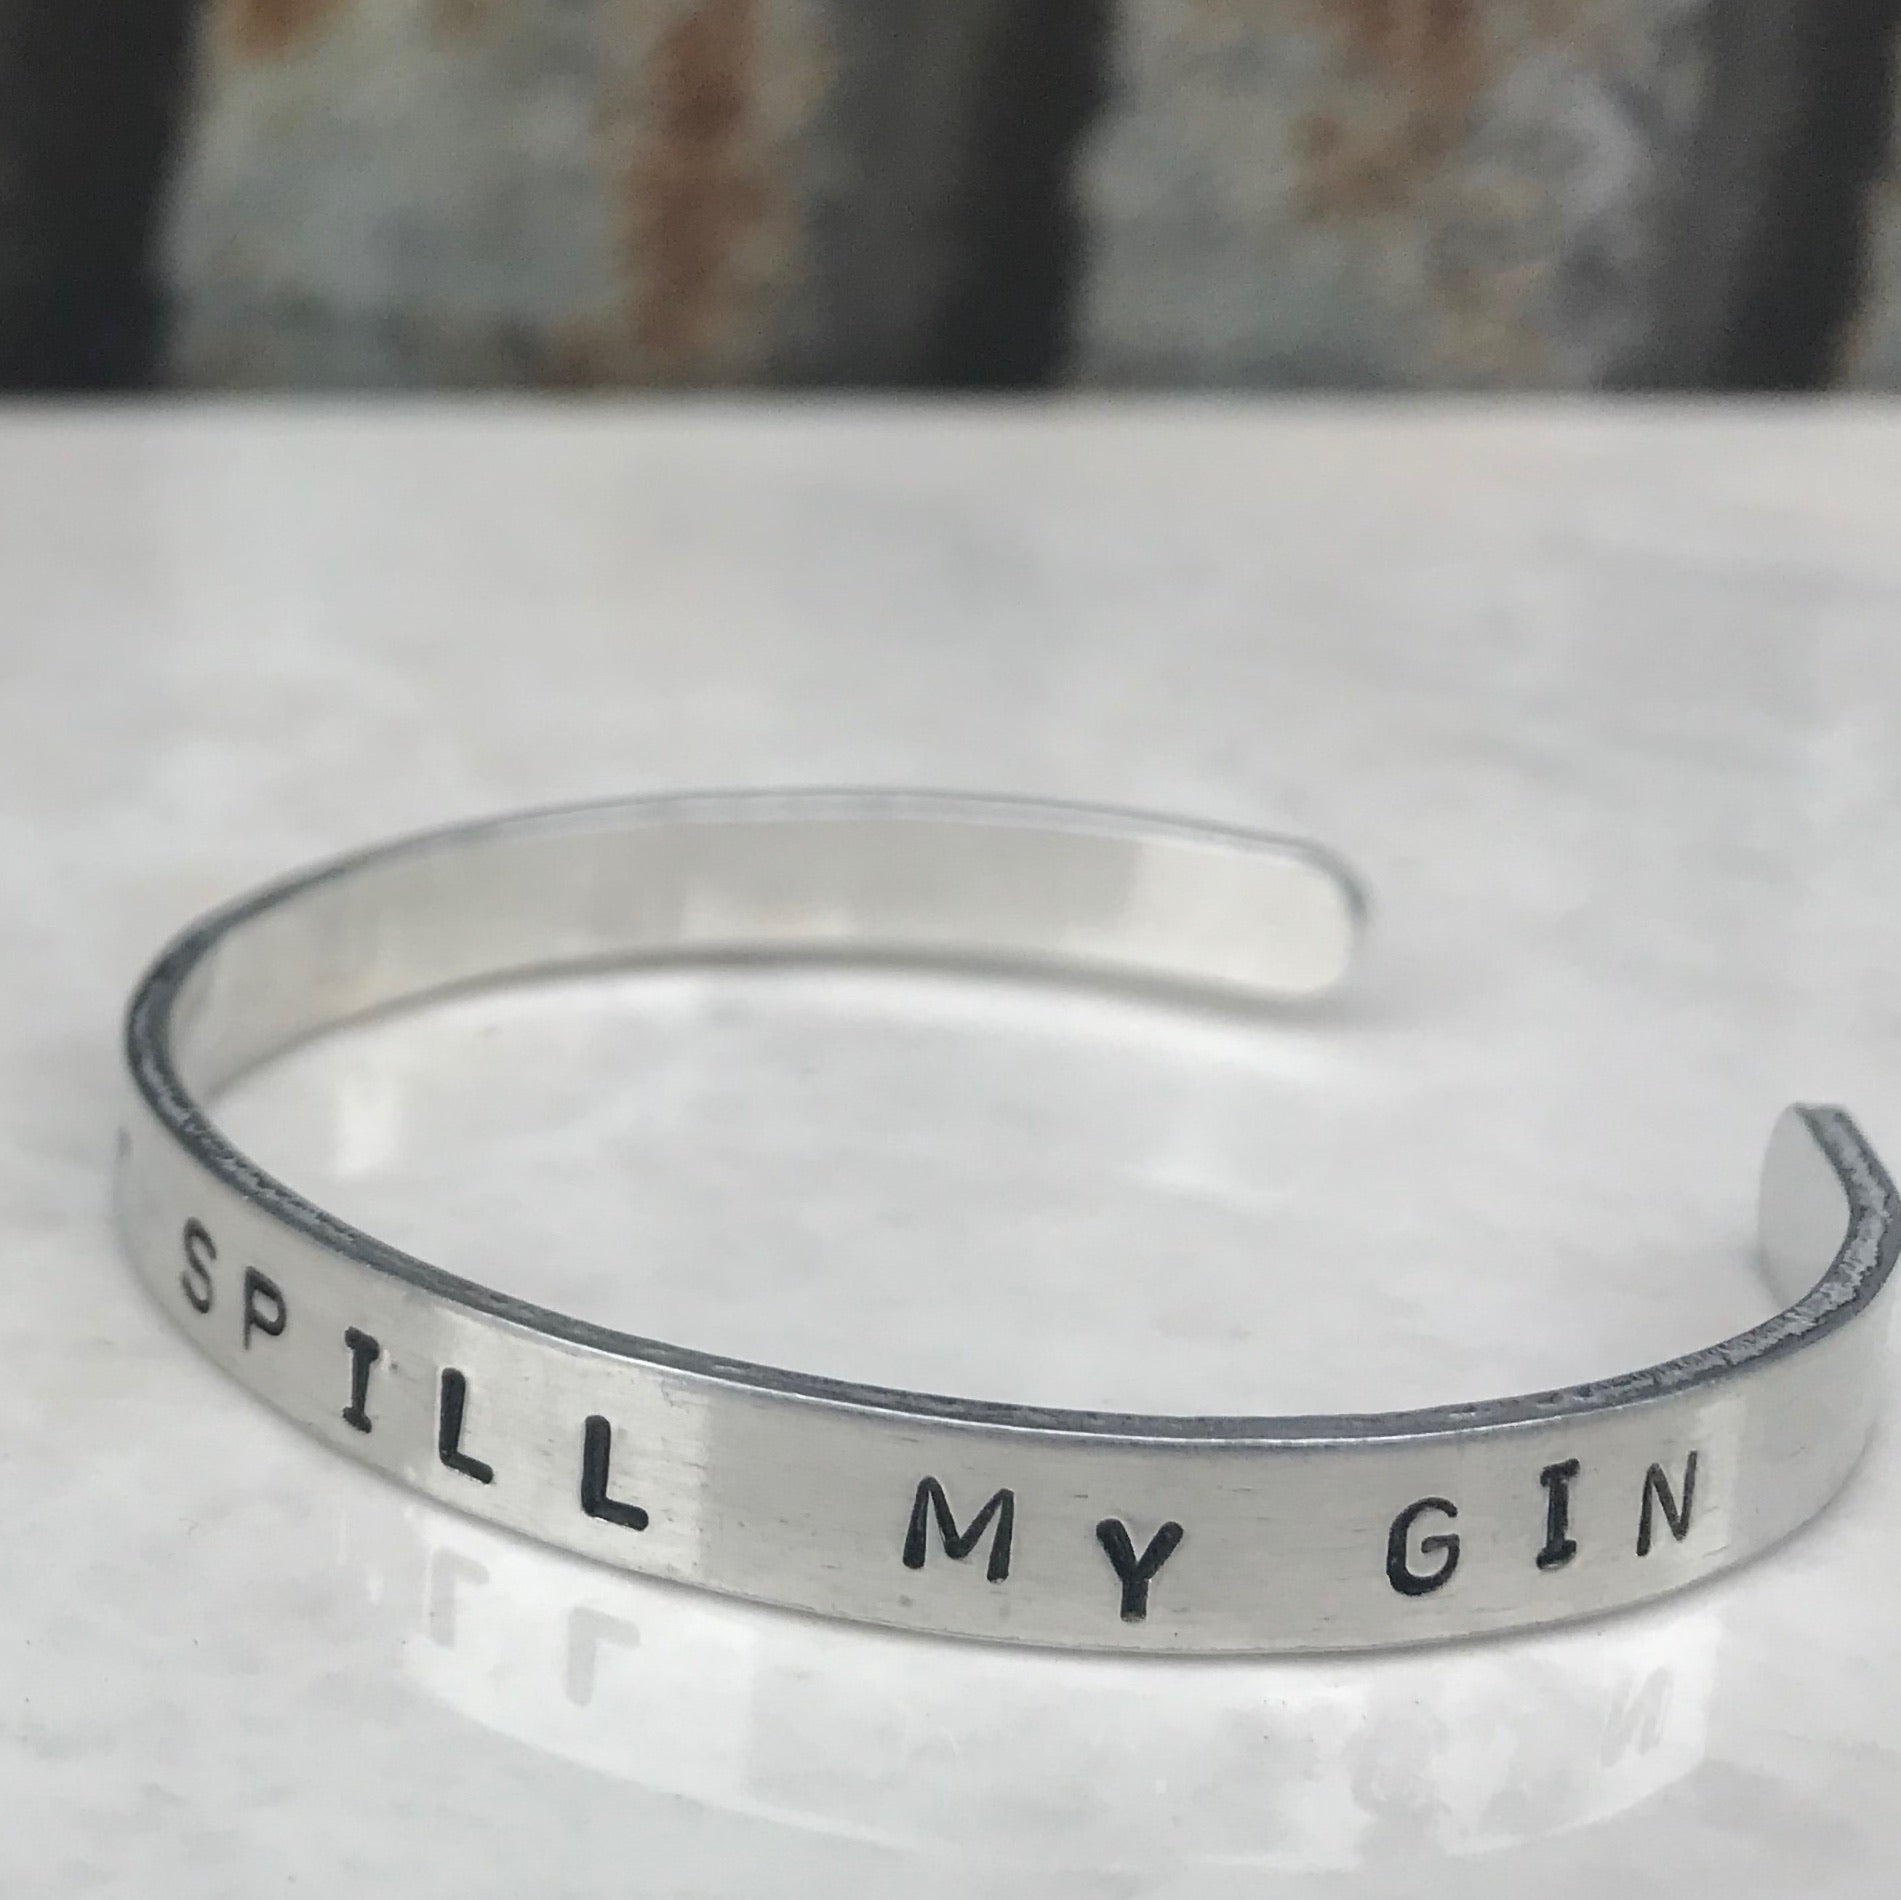 Bitch Don't Spill My Gin